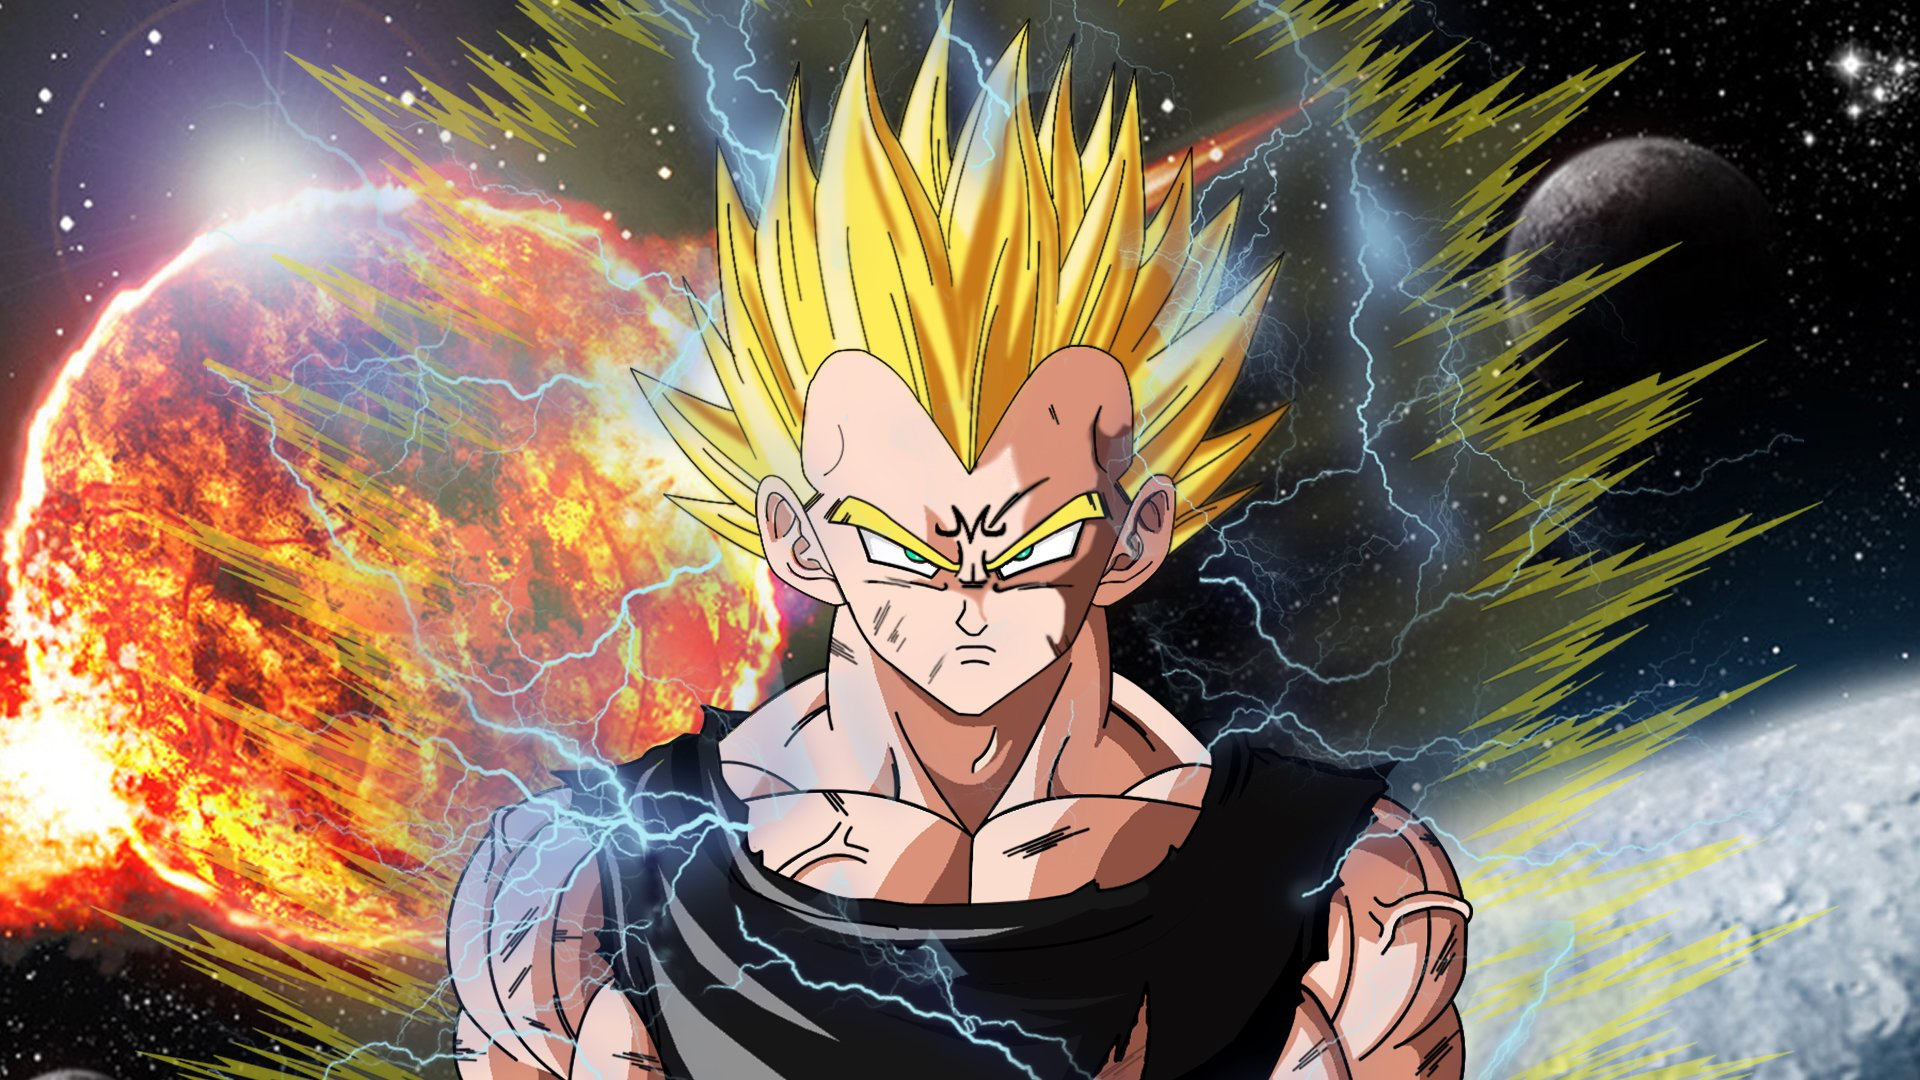 High Resolution Dragon Ball Z Super Saiyan Vegeta Wallpaper HD 3 1920x1080